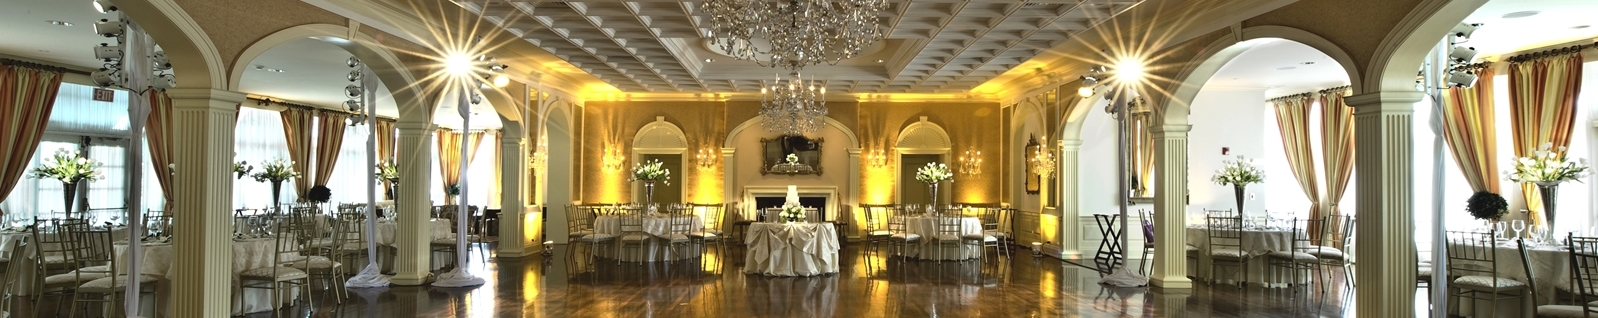 Weyhill guest house wedding